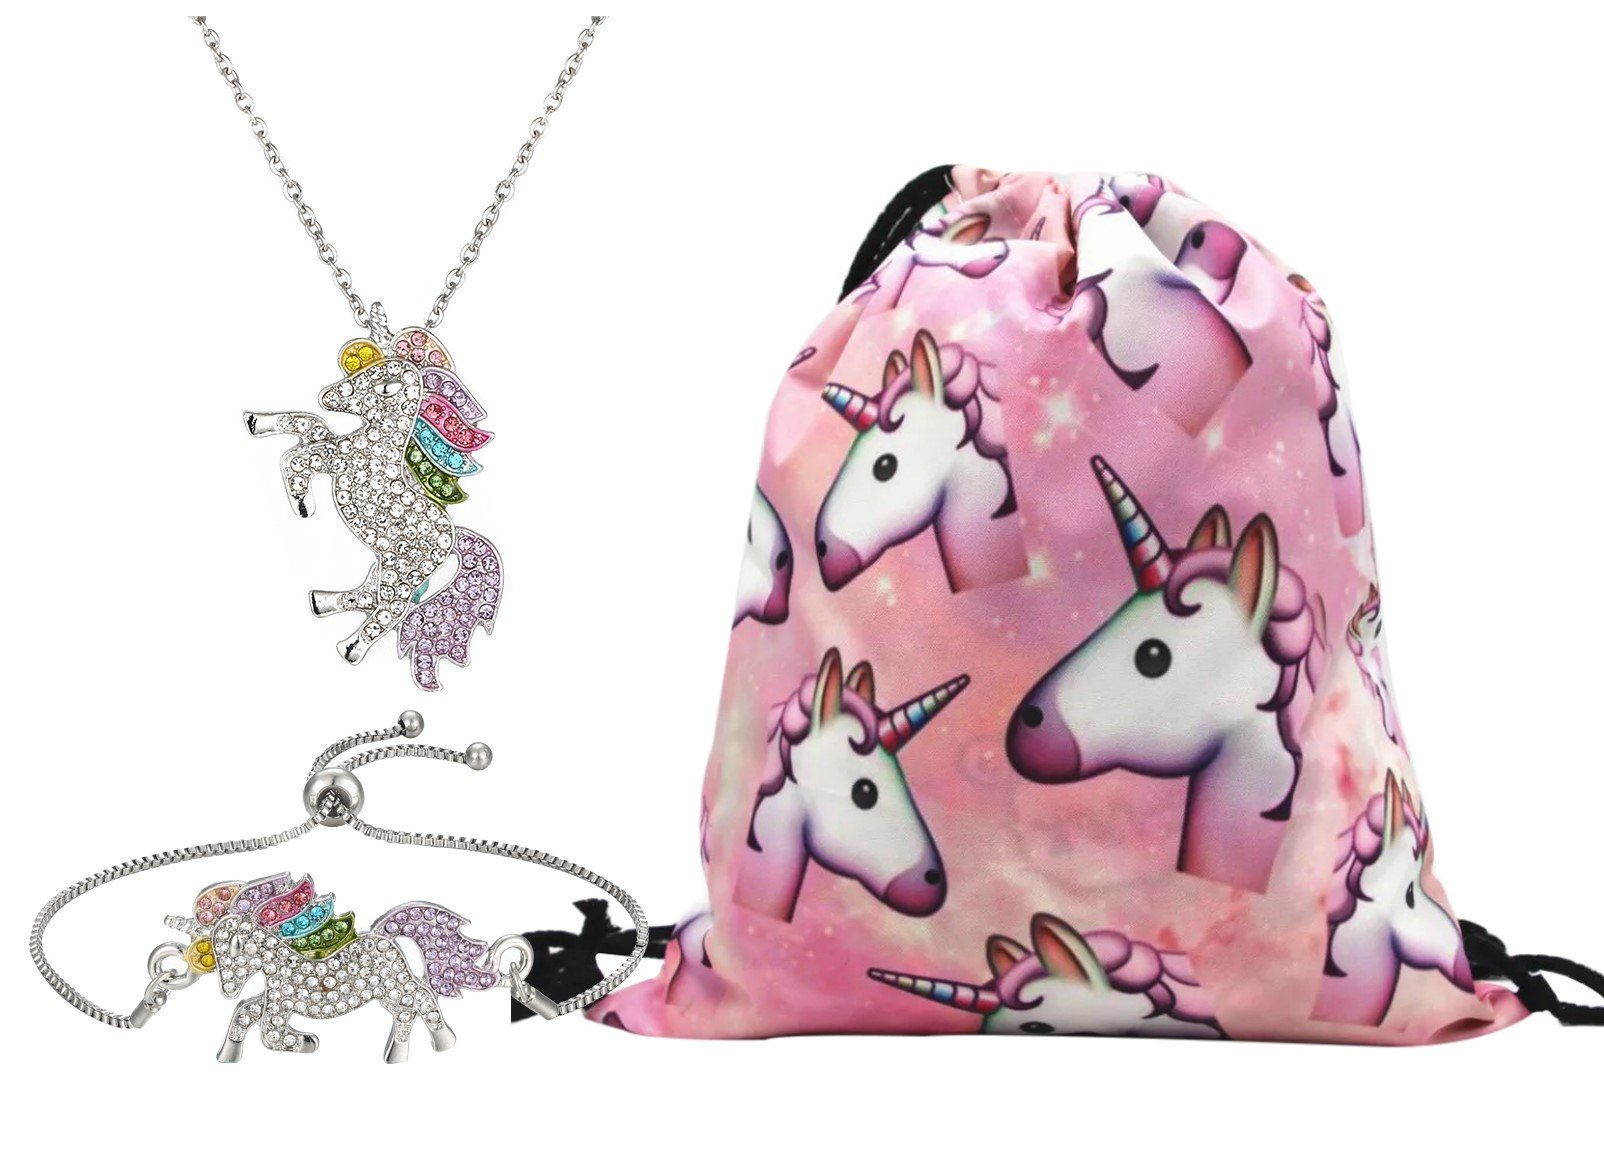 Unicorn Gifts for Girls 3 Pack - Unicorn Drawstring Backpack/Necklace/Bracelet (Pink)